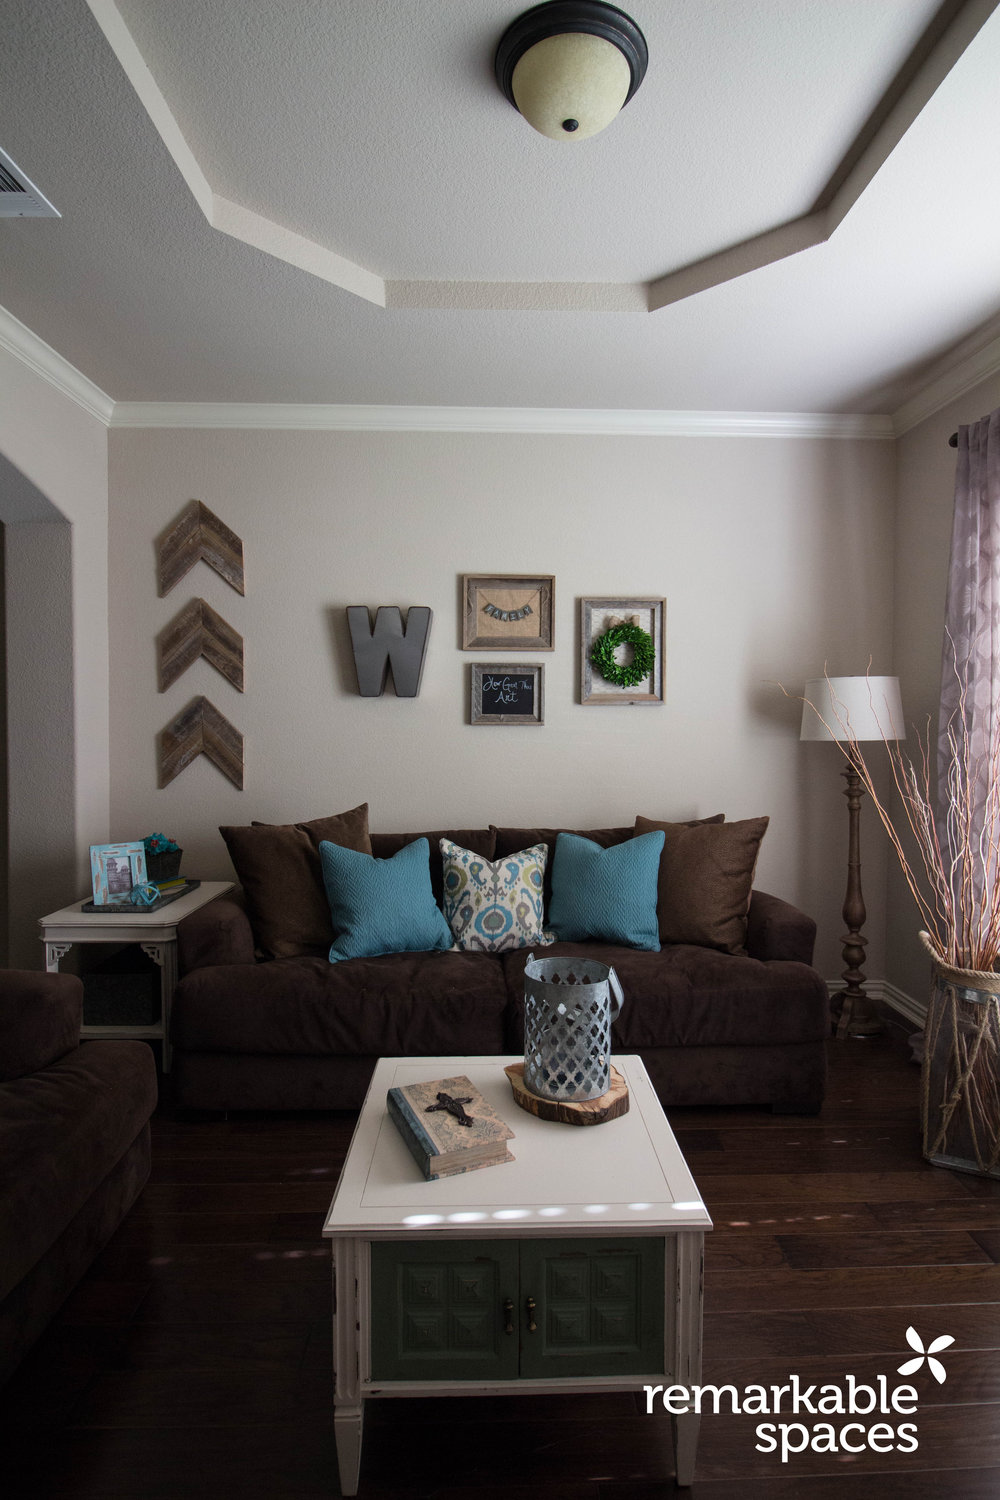 Remarkable Spaces Interior Styling - MW Living Room-2.1.jpg